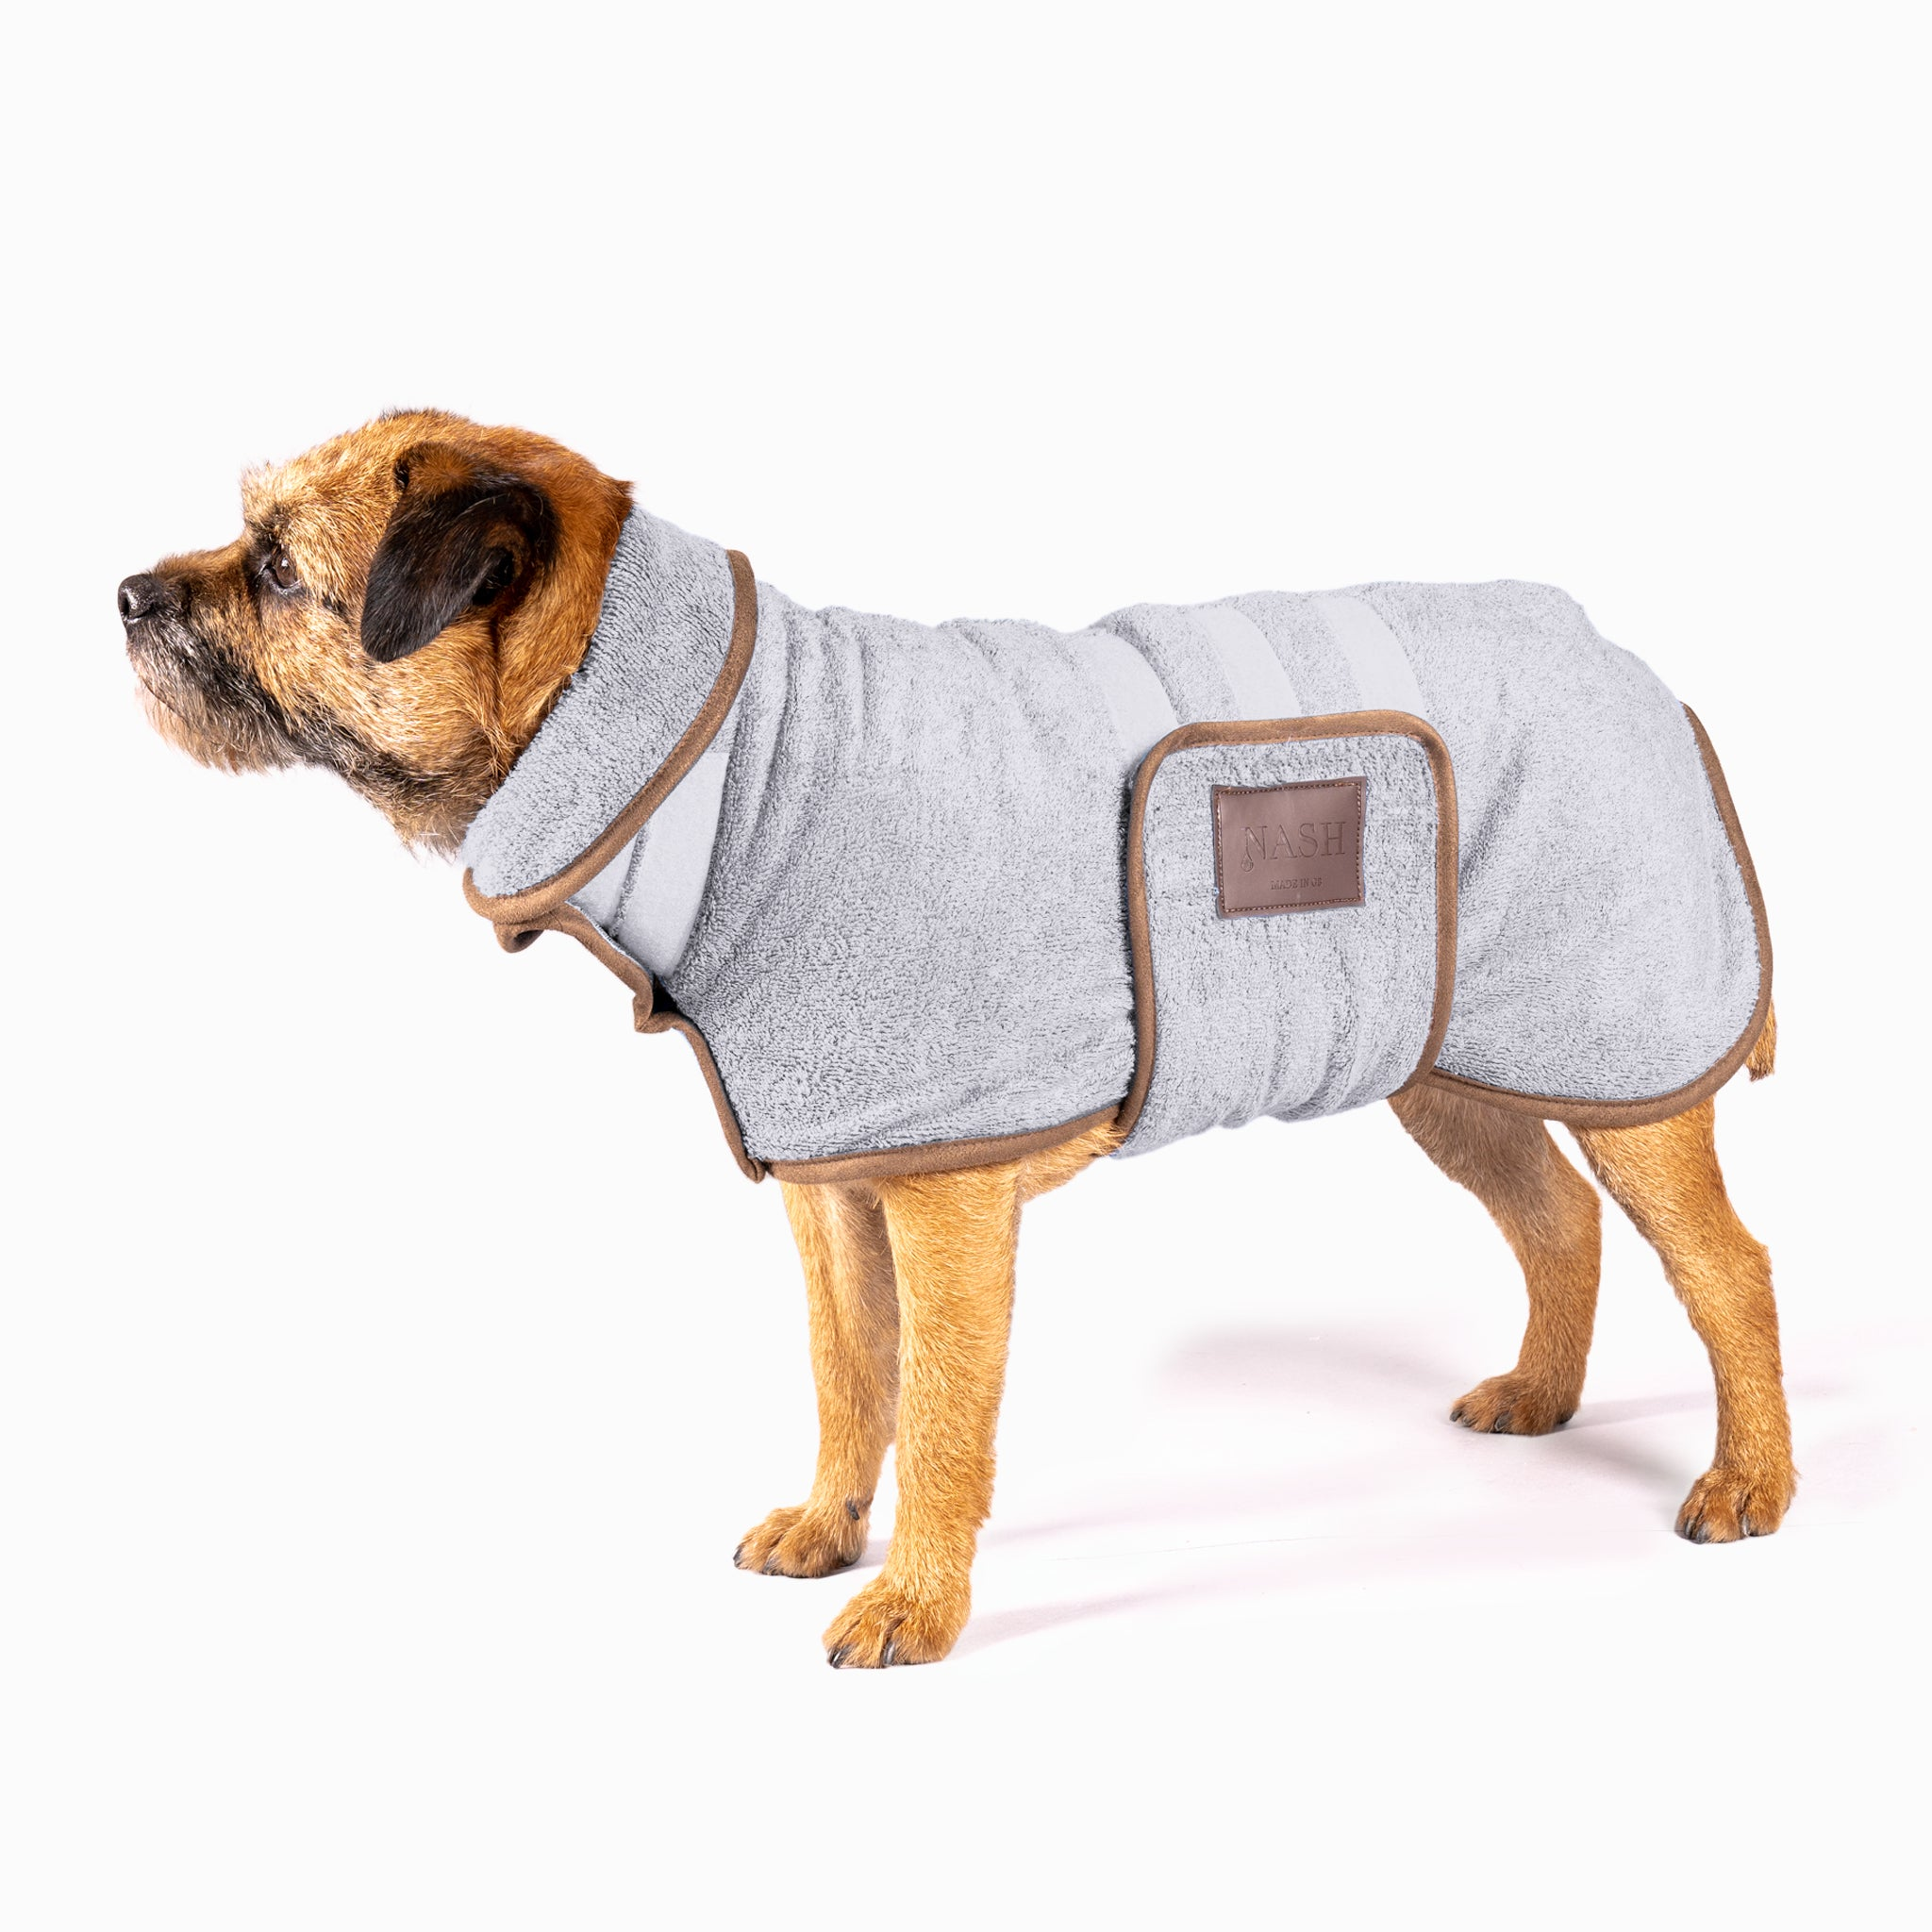 Bamboo Drying Coat - Grey - Shop Bamboo Dog Drying Coats, bed covers, drying mitts & throw Online!